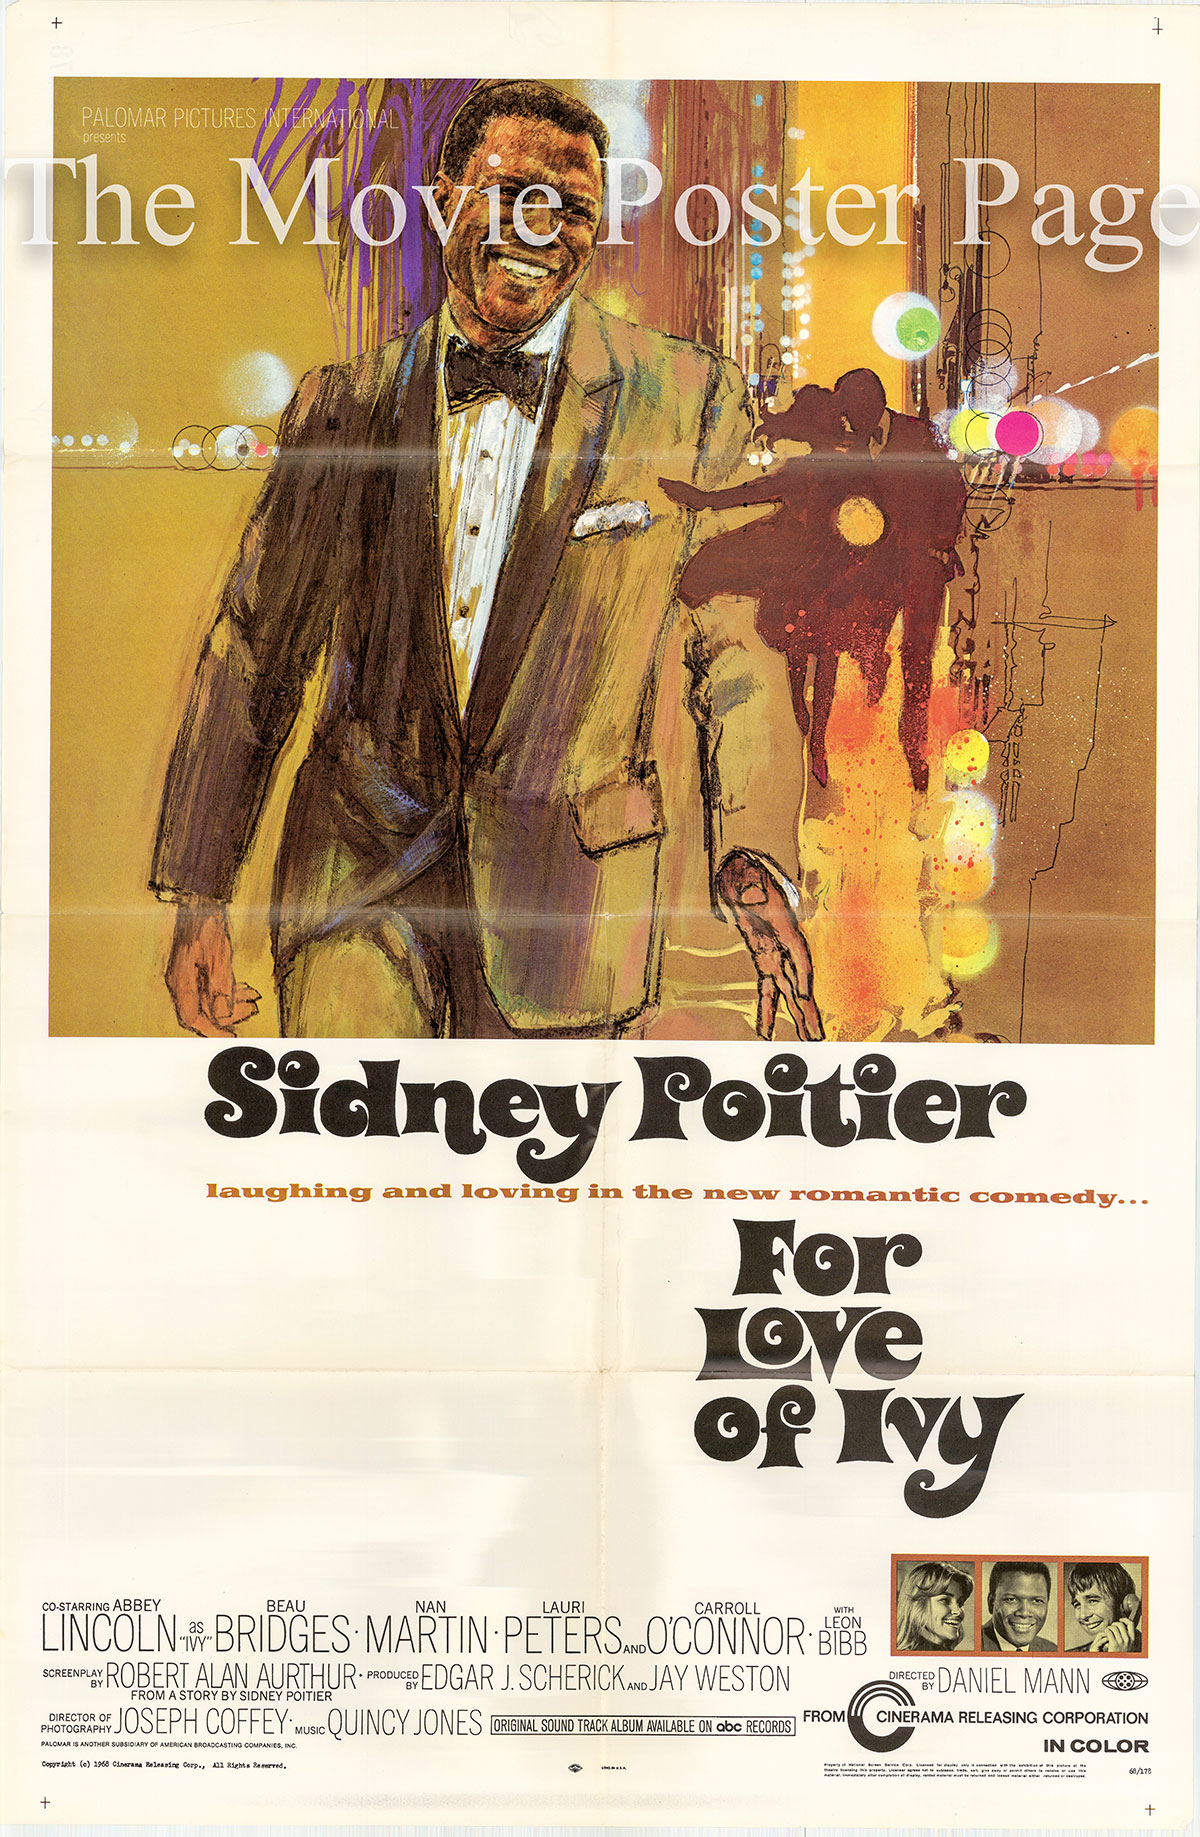 Pictured is a US one-sheet poster for the 1968 Daniel Mann film For Love of Ivy starring Sidney Poitier as Jack Parks.